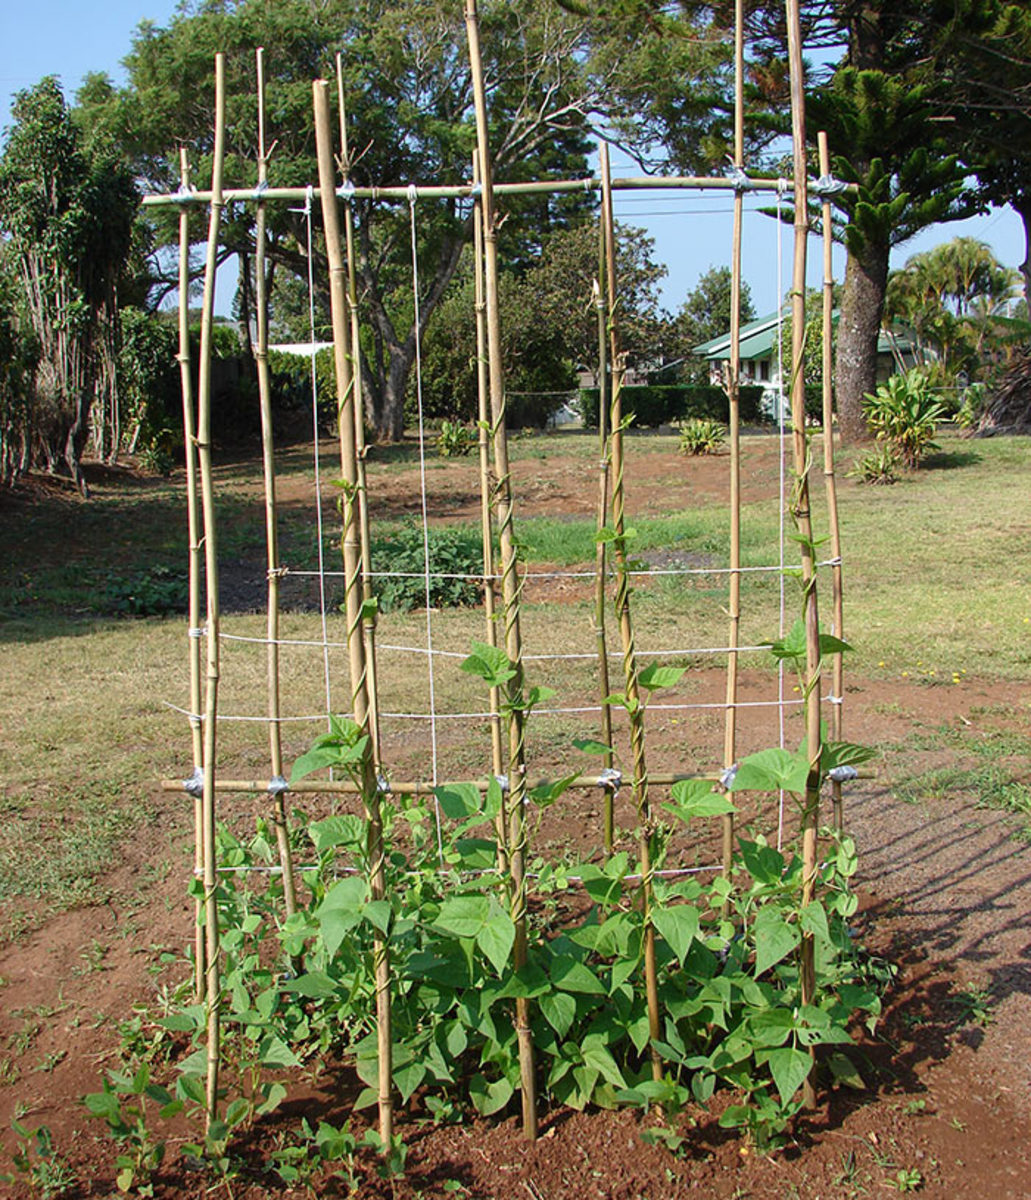 Pole beans can be seeded once the soil warms up.